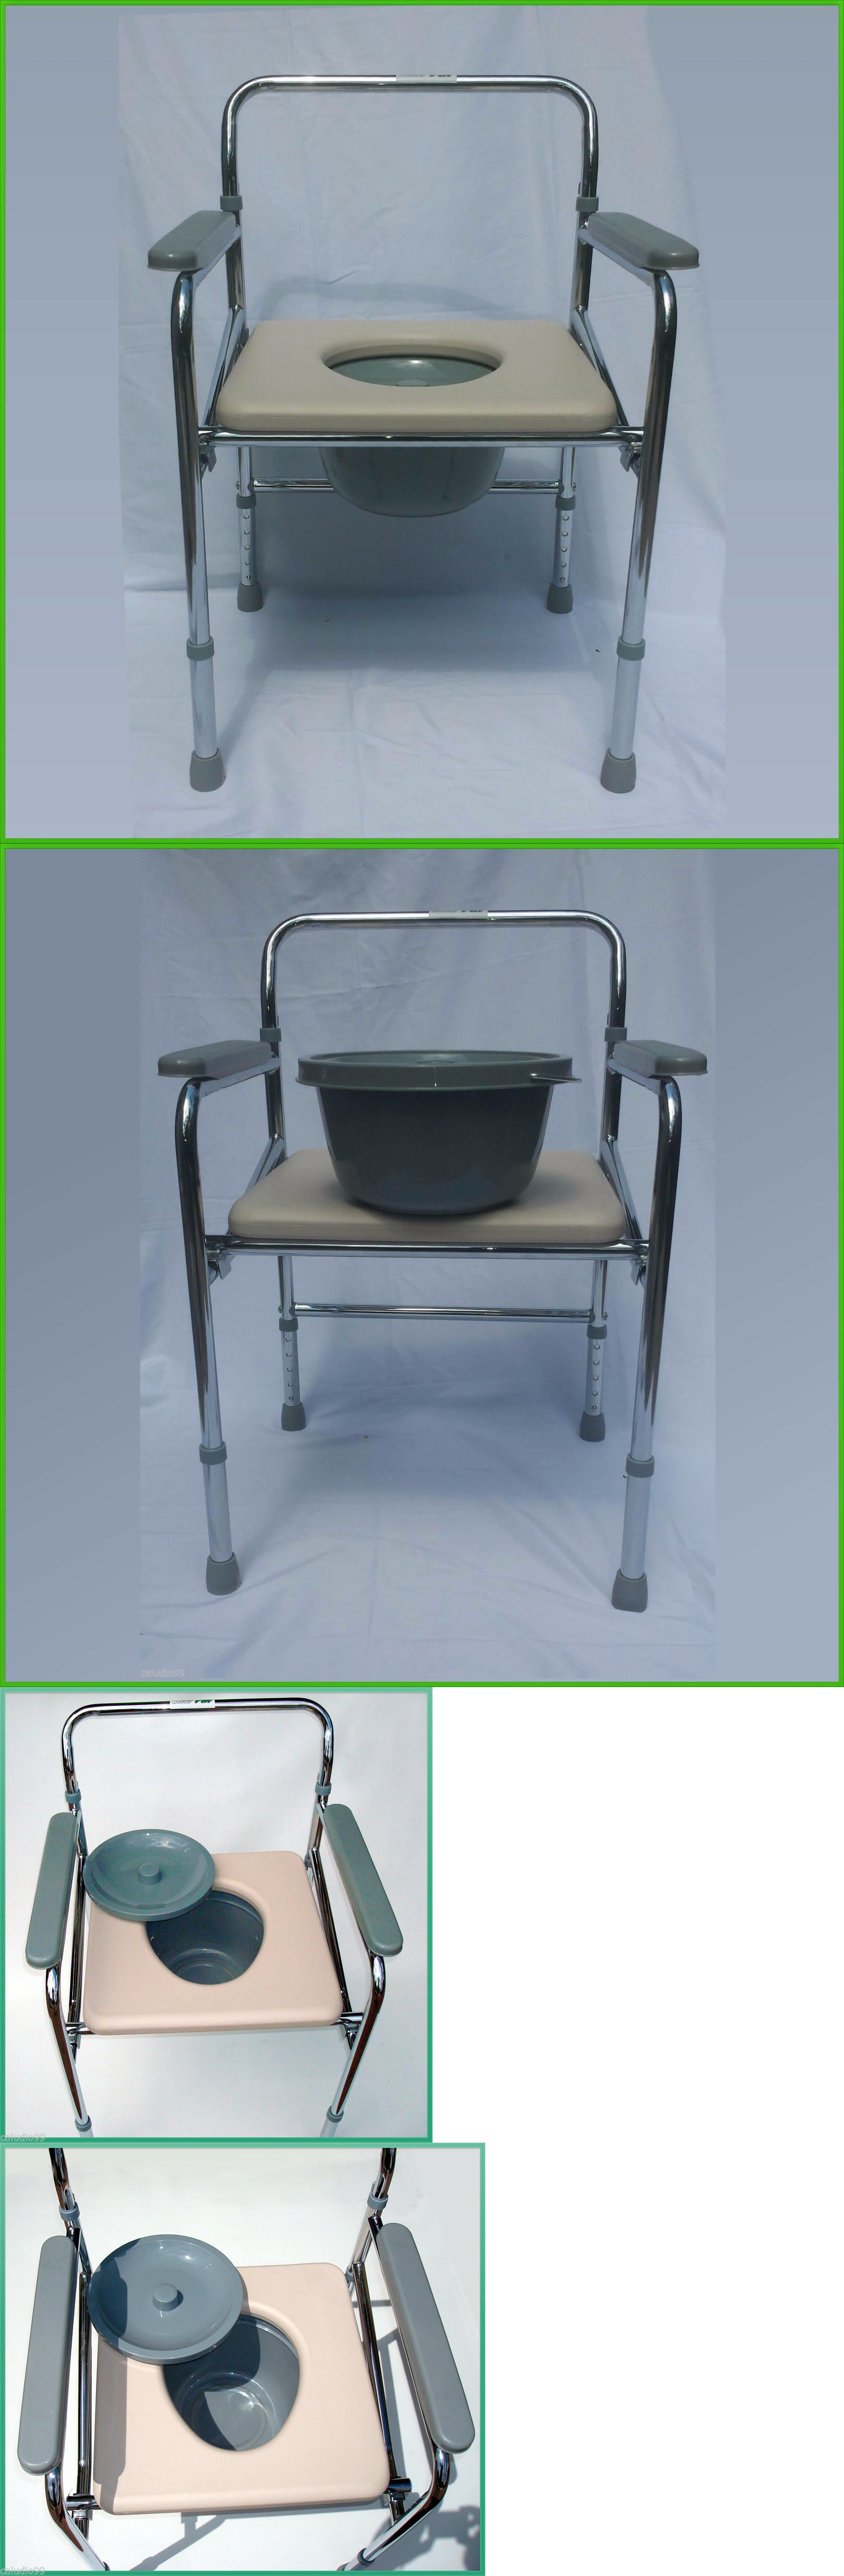 Shower and Bath Seats: Folding Commode Chair Heavy Duty Steel ...